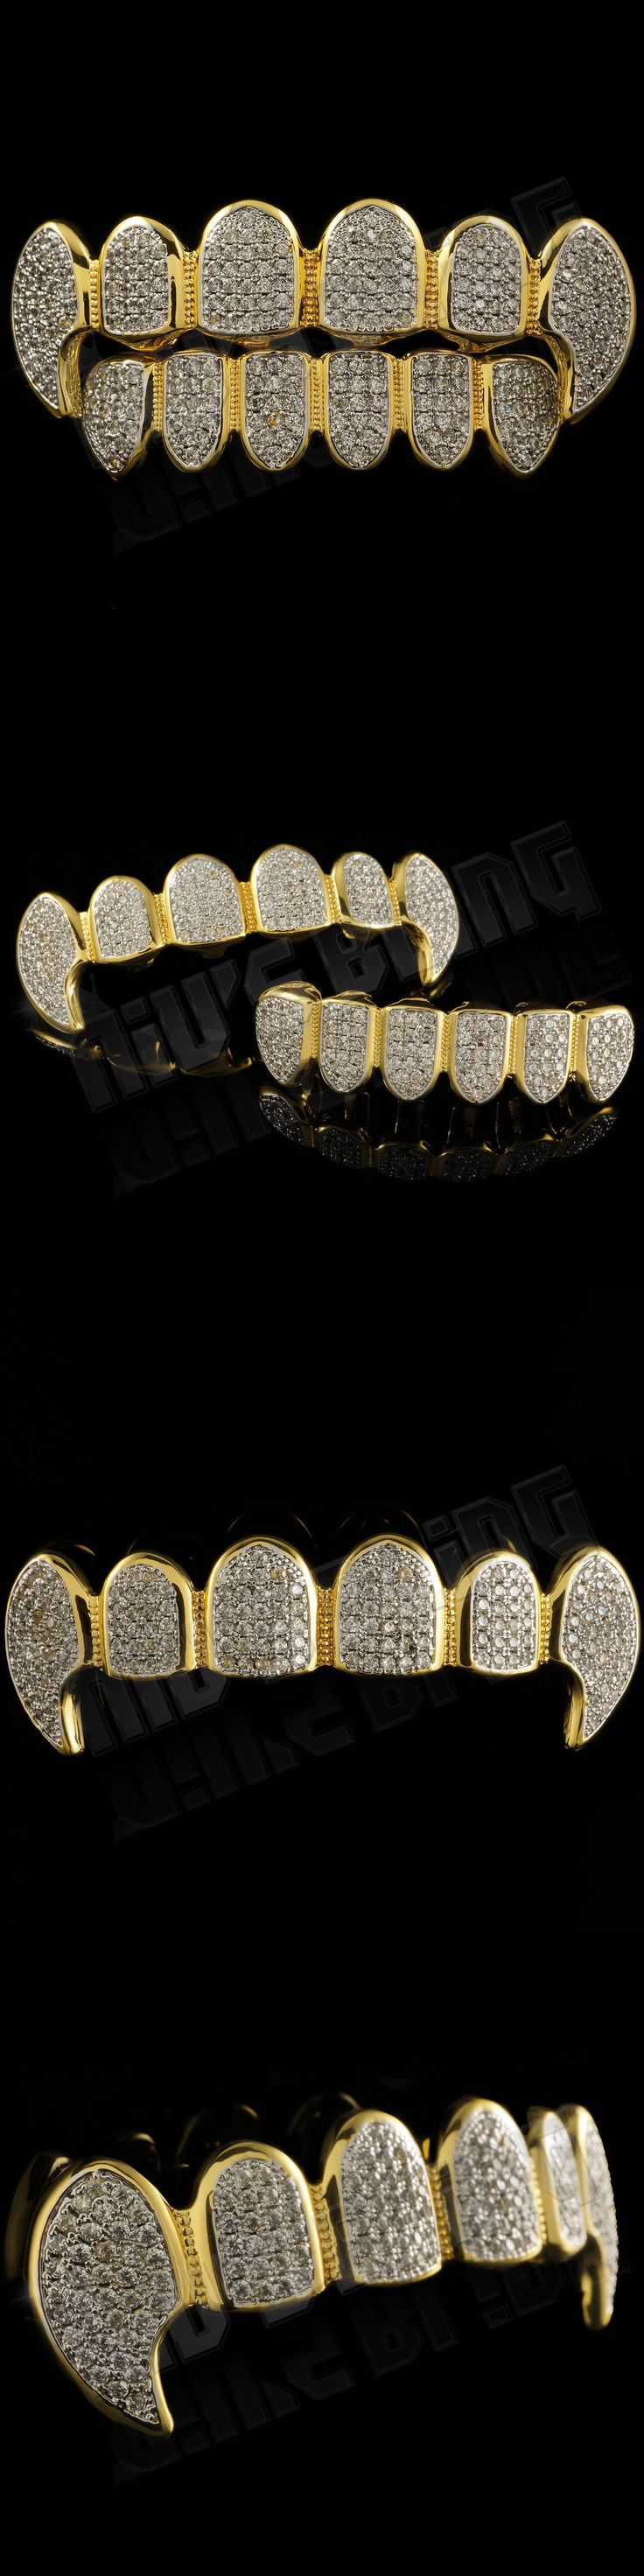 Grillz Dental Grills 152808: 18K Gold Plated Cz Vampire Dracula Fangs Top Bottom Rhodium Grillz Teeth Grills BUY IT NOW ONLY: $54.99